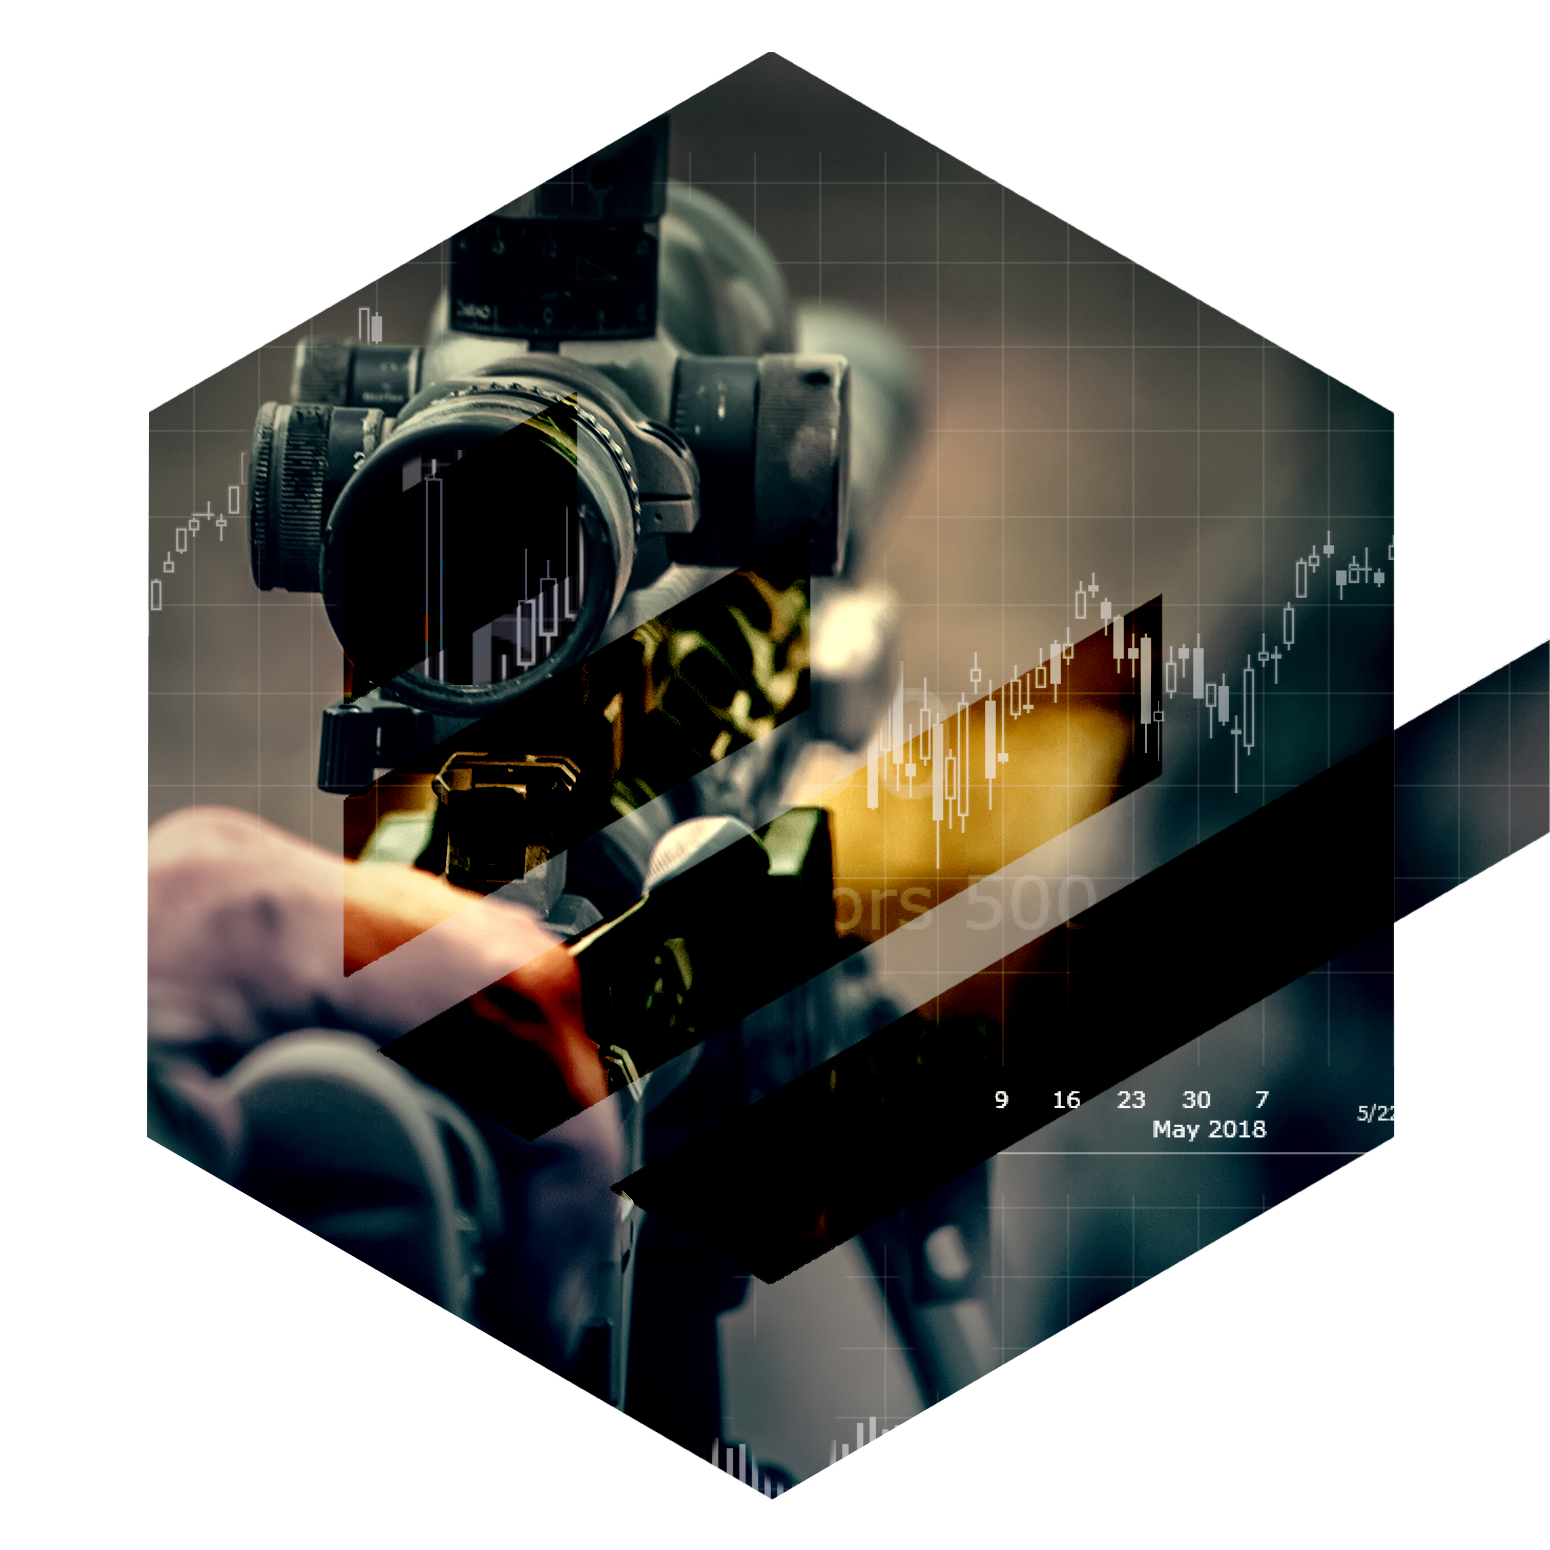 Texas Sharpshooter (Live) - Take advantage of market manipulation by the